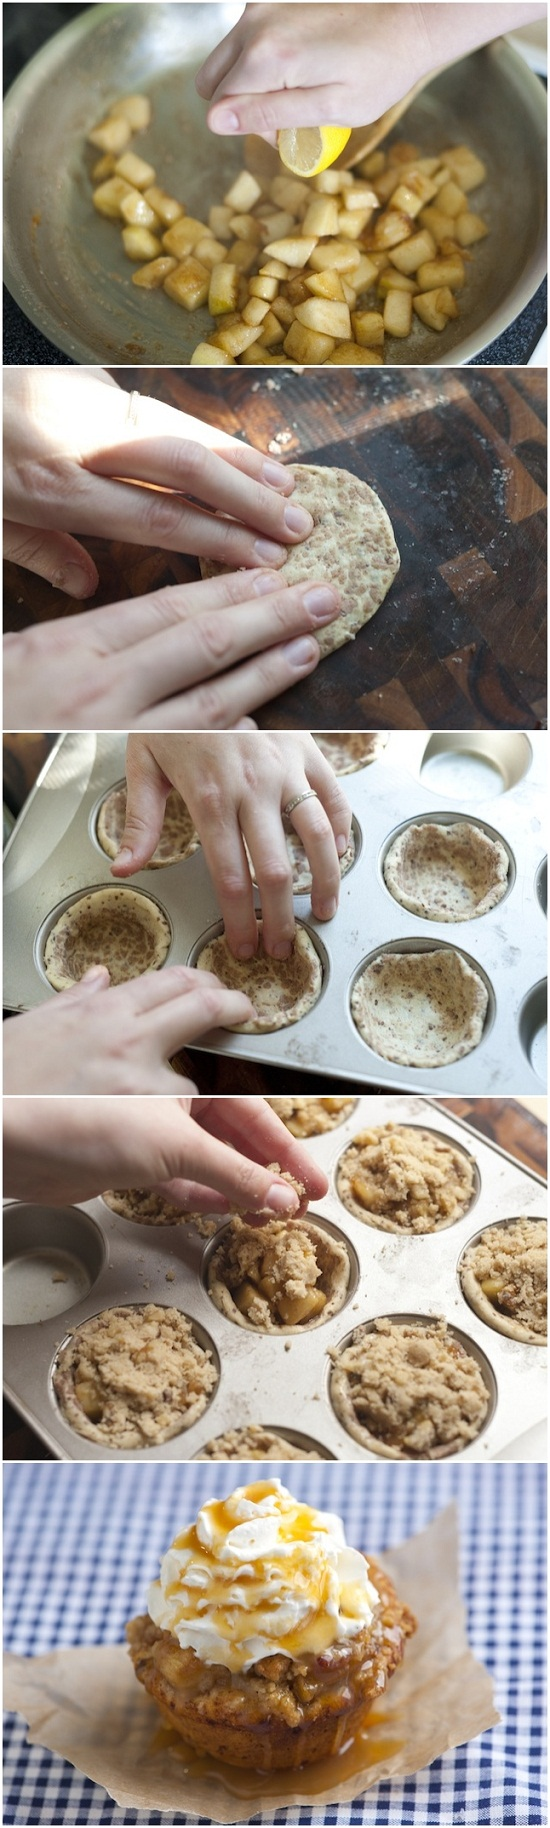 Apple-Pie-Cupcakes-Recipe